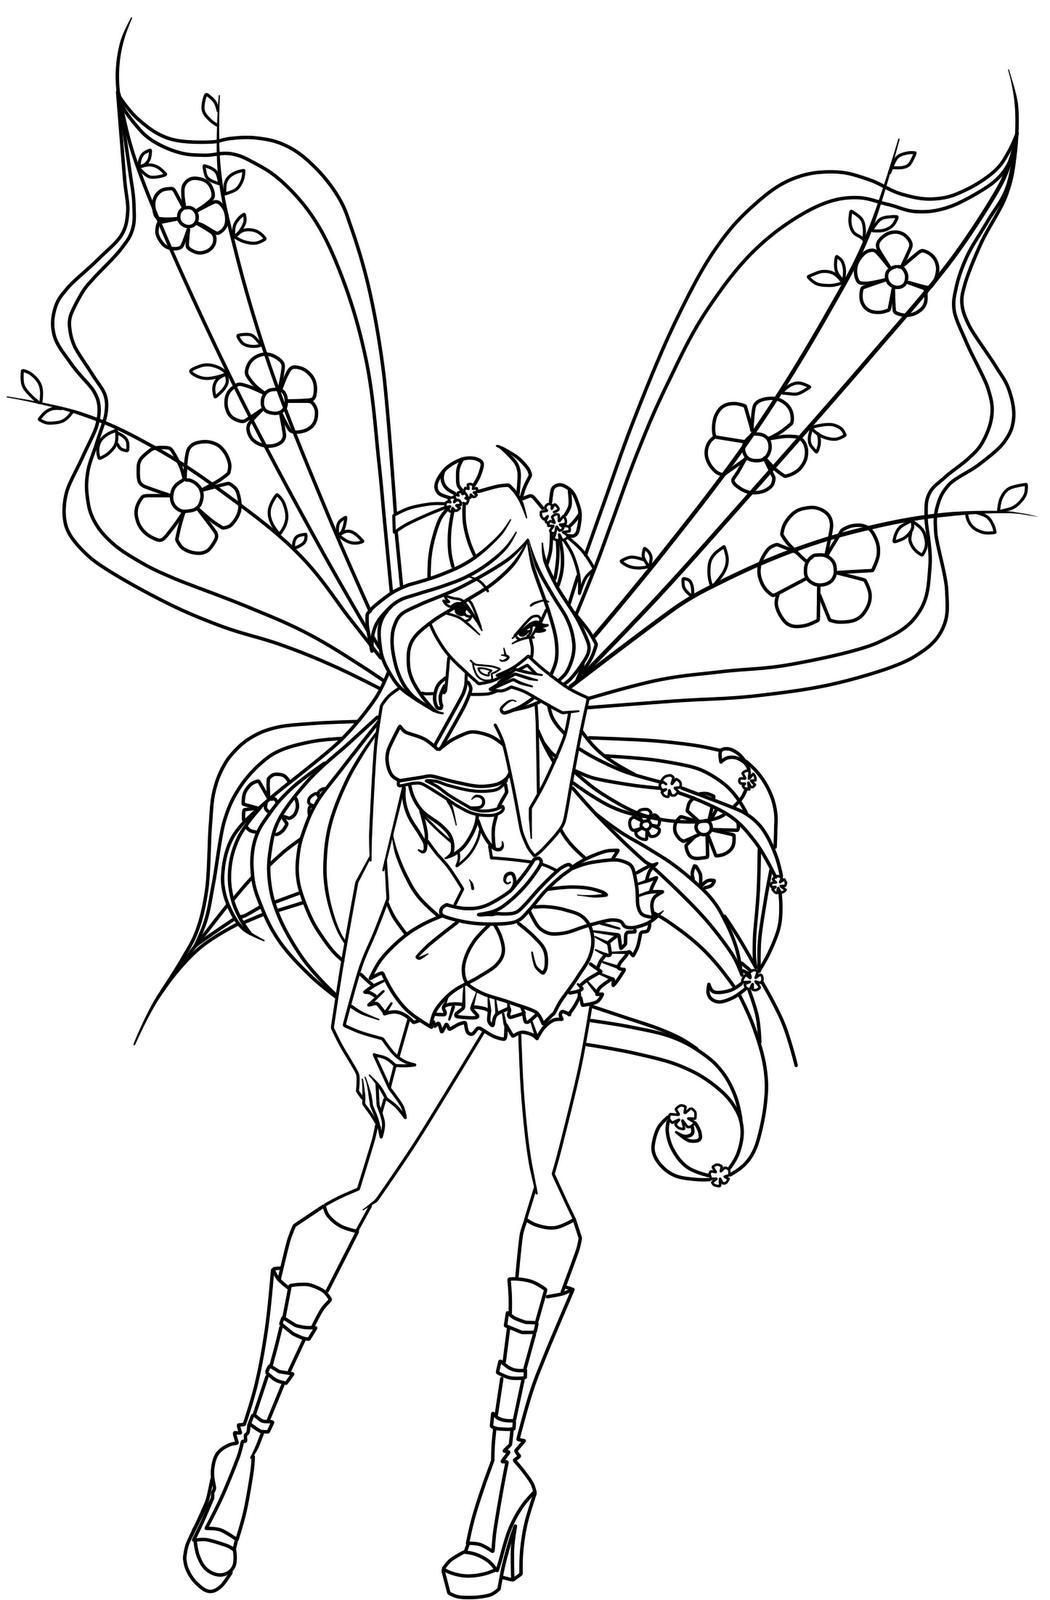 Winx Club Coloring Pages Winxclub Photo 18537763 Fanpop Winx Club Coloring Pages Flora